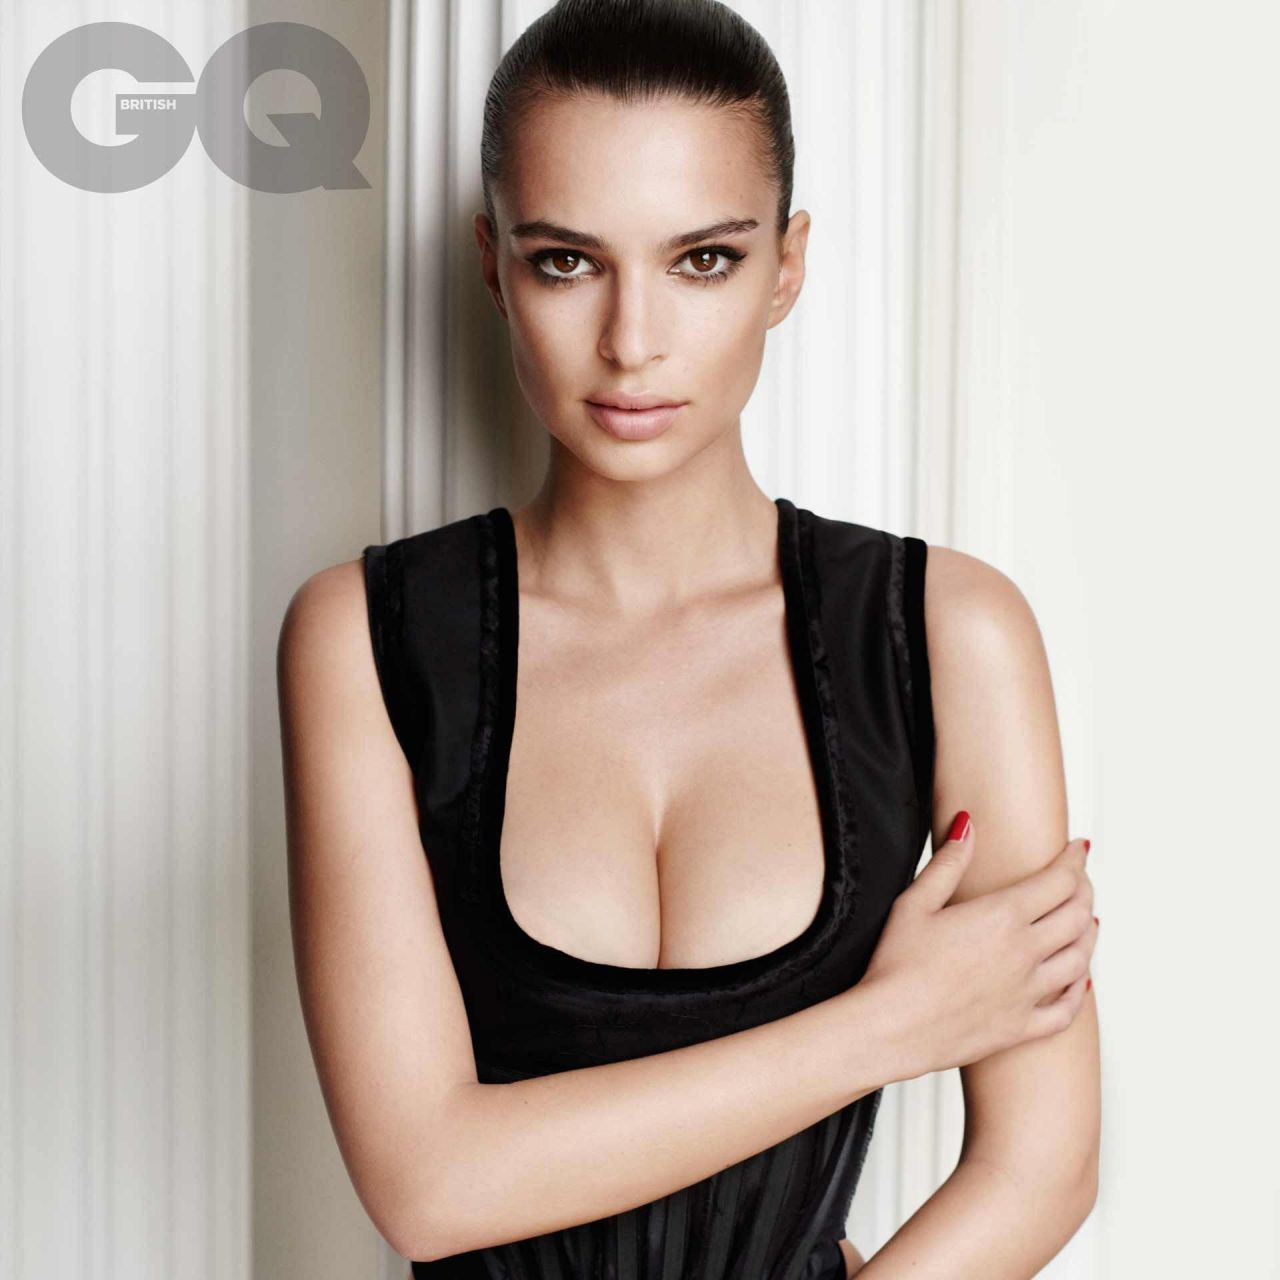 Emily Ratajkowski – British GQ Magazine September 2015